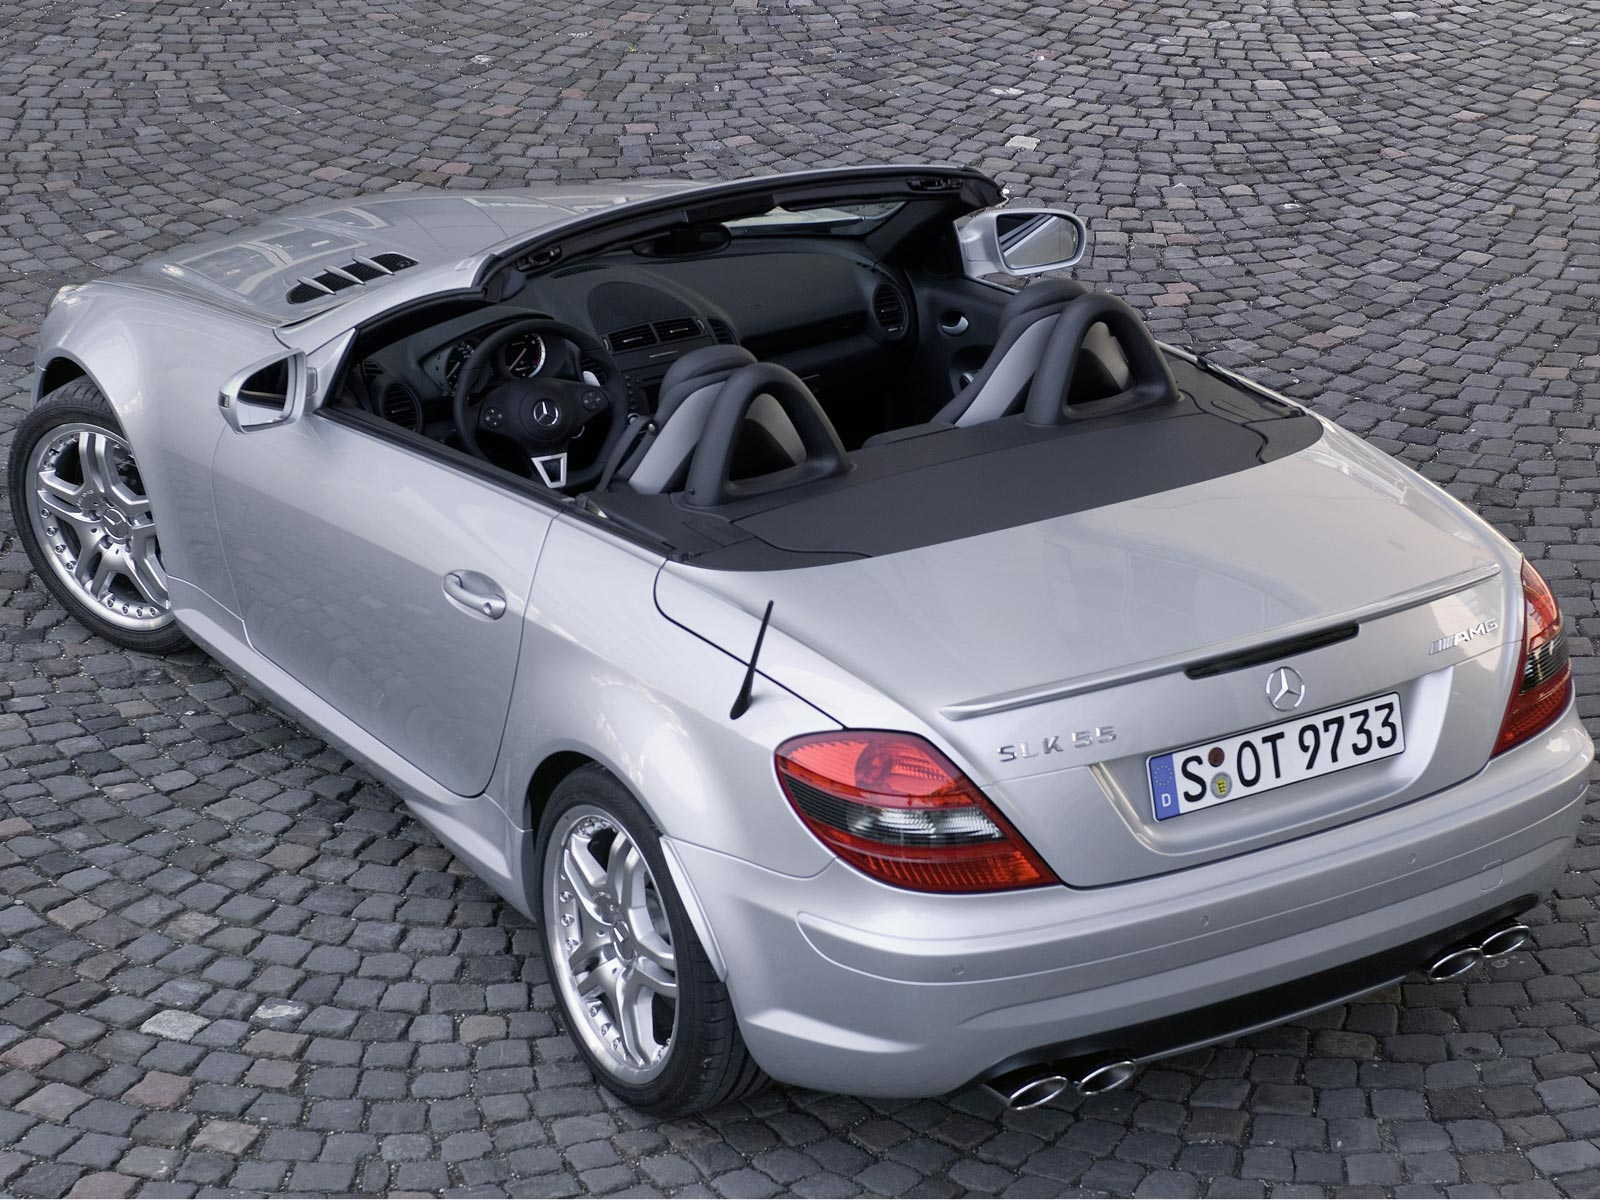 2004 2010 mercedes slk baureihe r171 autoguru. Black Bedroom Furniture Sets. Home Design Ideas